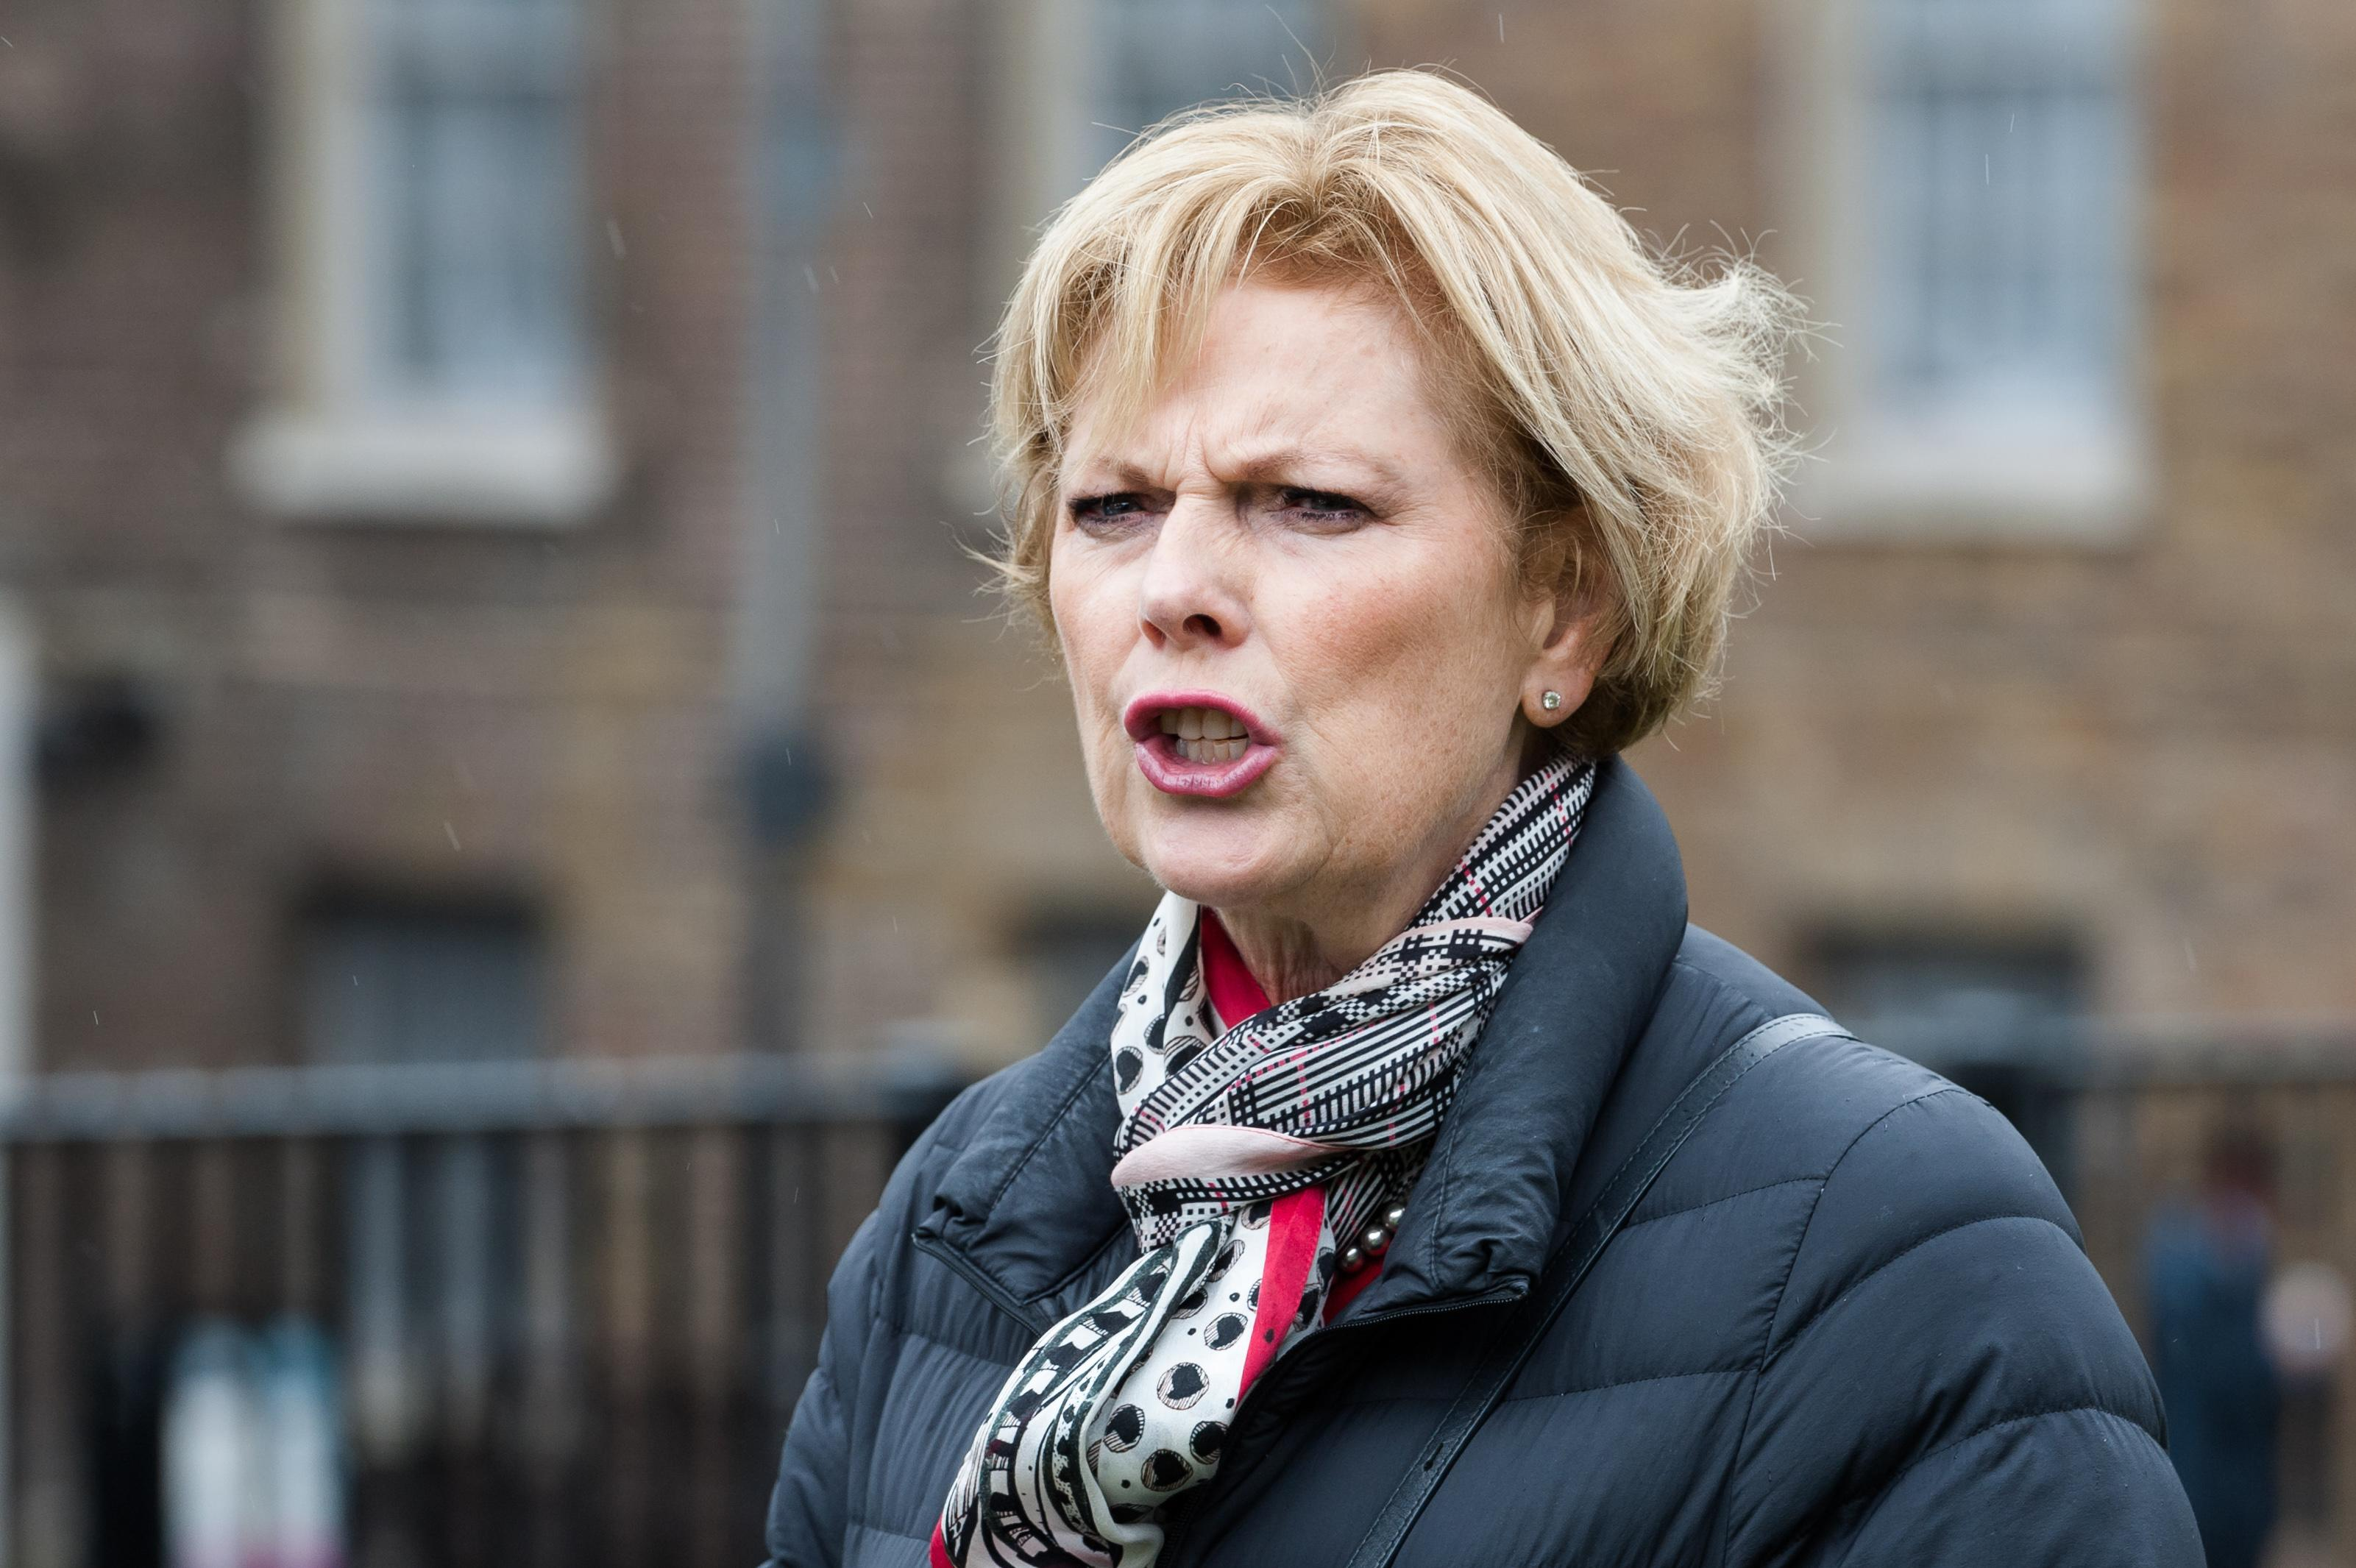 Anna Soubry, leader of The Independent Group for Change, seen outside the Houses of Parliament on 21 May, 2019 in London, England. Today, the government will attempt to bring a vote on Boris Johnson's EU withdrawal agreemnet after MPs witheld their support for the deal on Saturday to prevent a no-deal Brexit on 31st October, forcing prime minster to write a letter requesting an extension from the EU. (Photo by WIktor Szymanowicz/NurPhoto via Getty Images)